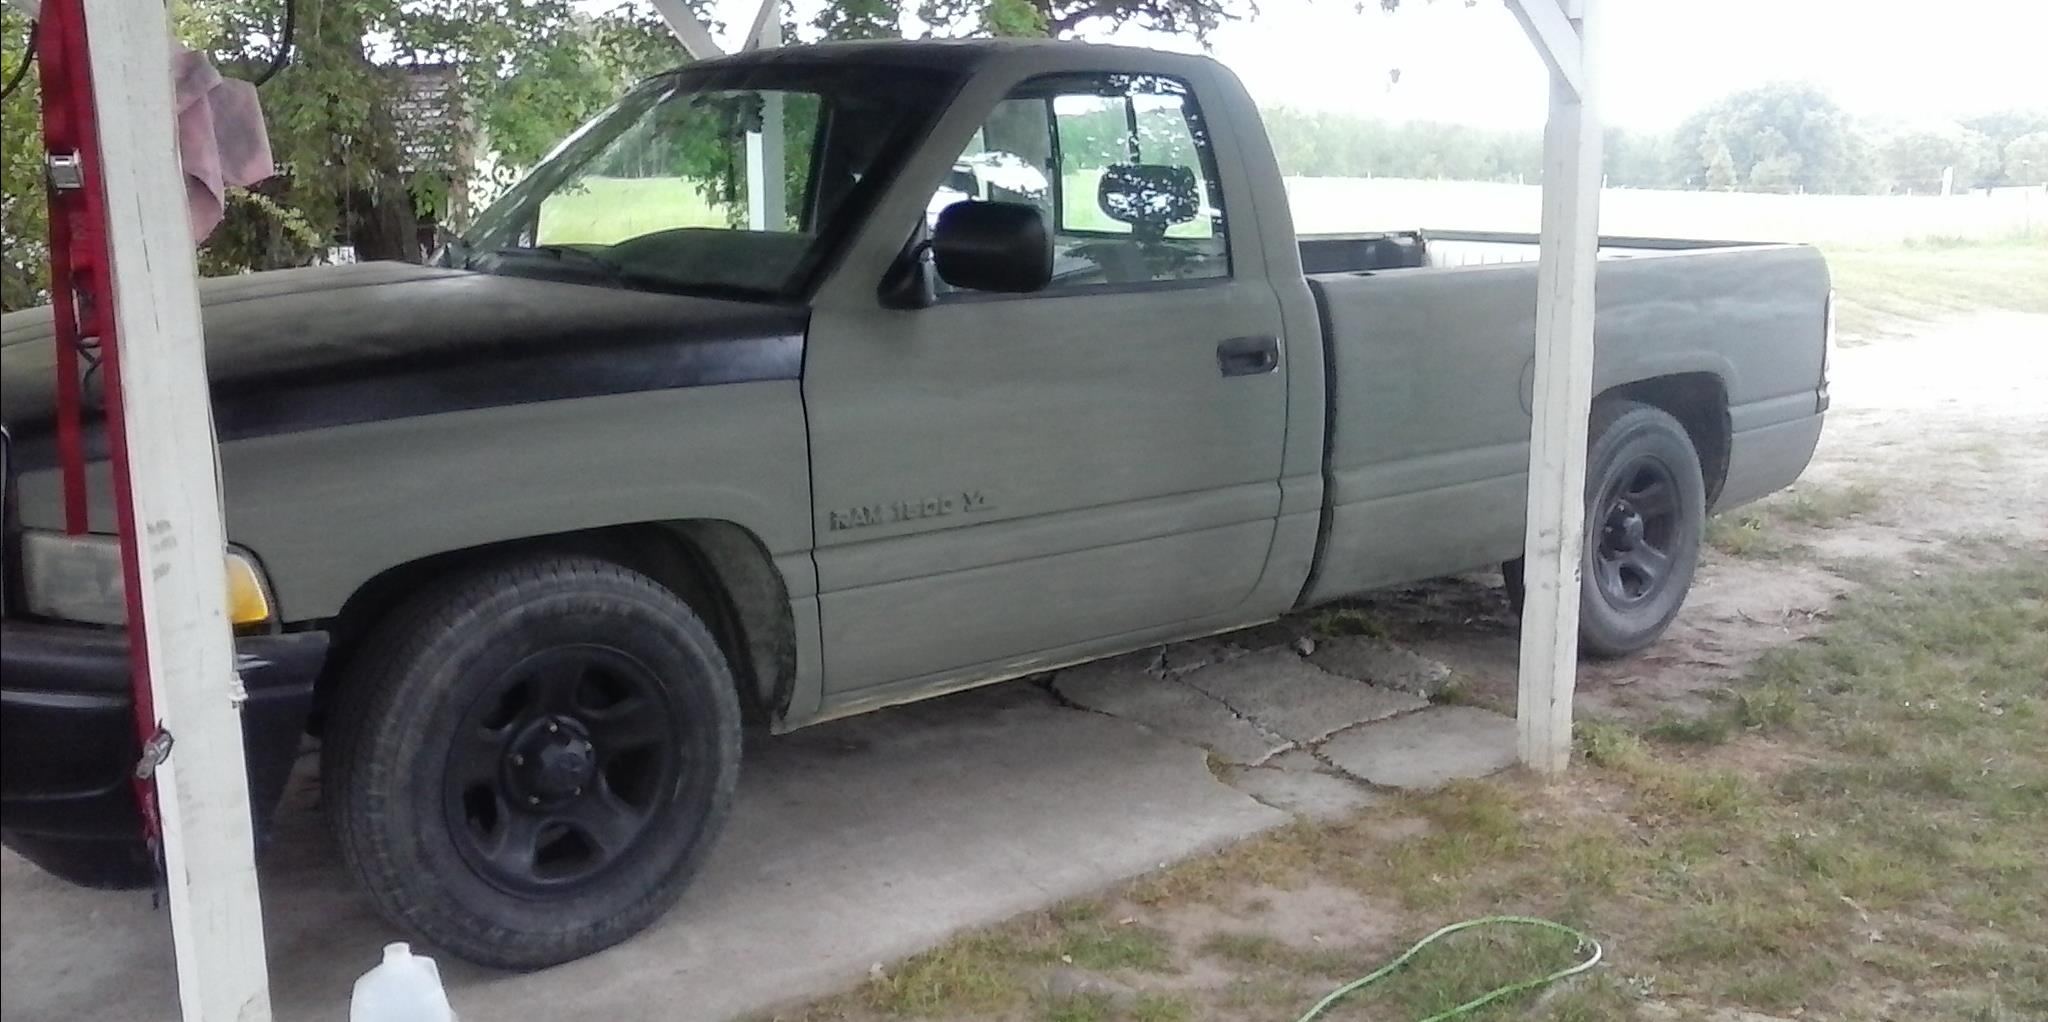 MODundertaker 1994 Dodge Ram 1500 Regular Cab